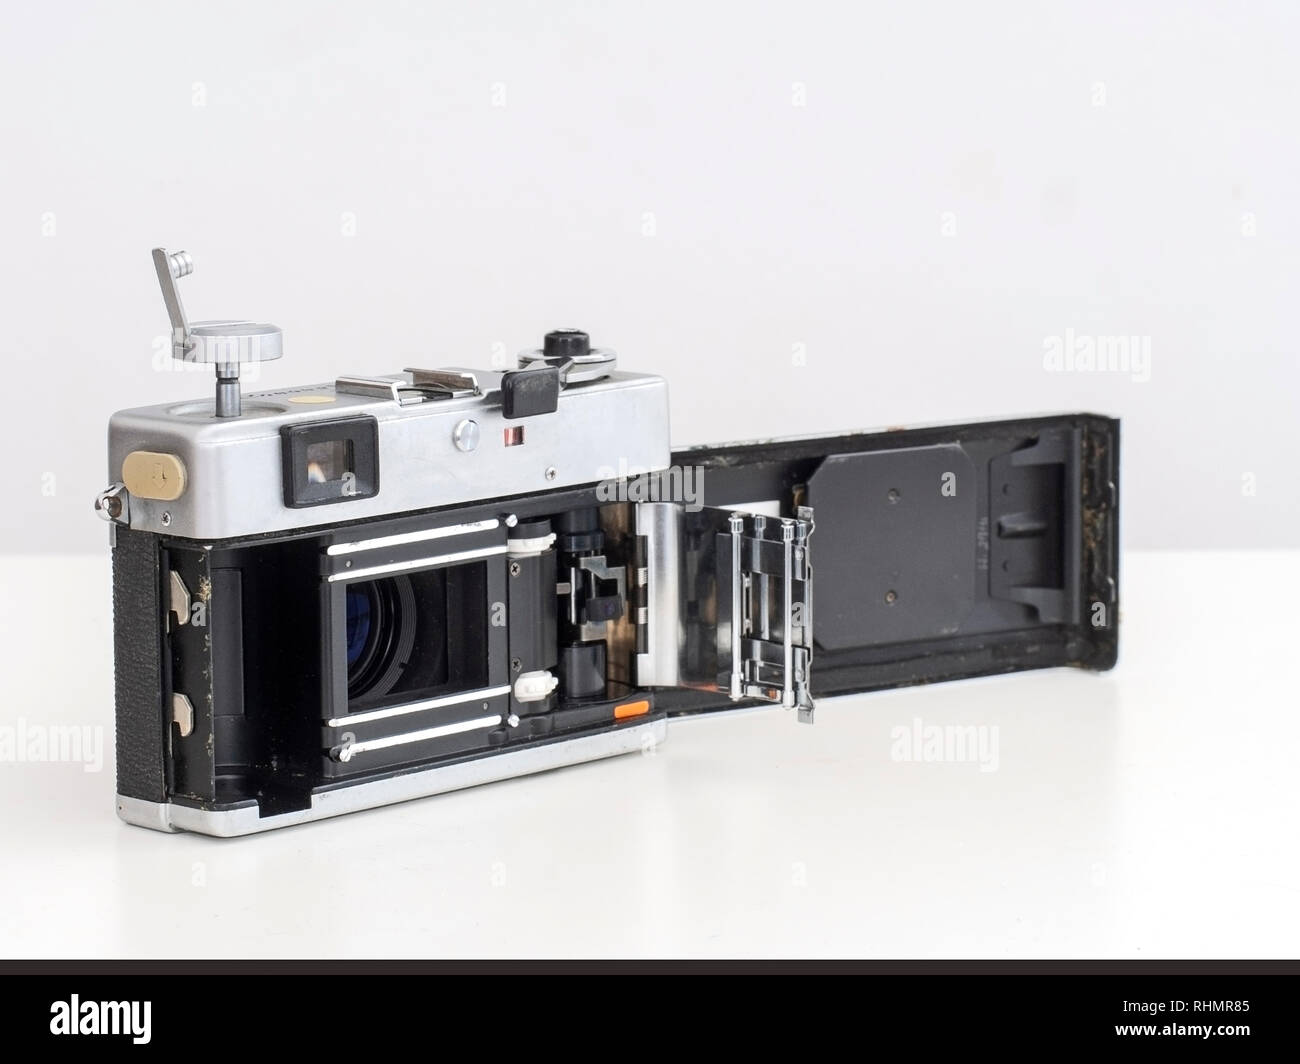 A preloved example of this classic rangefinder camera, inside view. The Canonet QL17 from Canon is a 35 mm camera first manufactured in 1972. - Stock Image